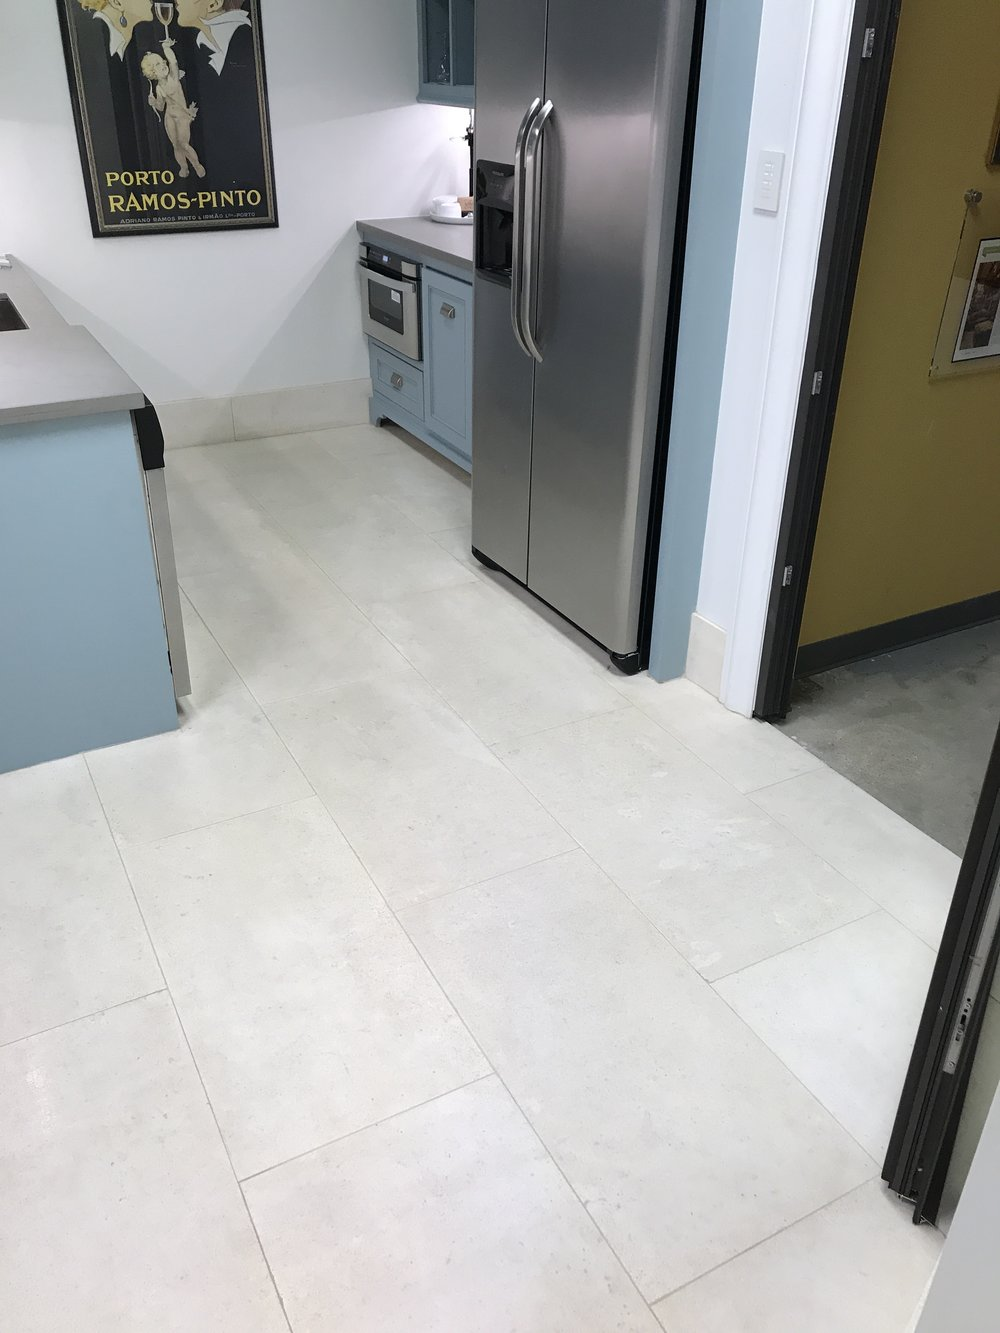 After steam cleaning and disinfection of natural stone flooring